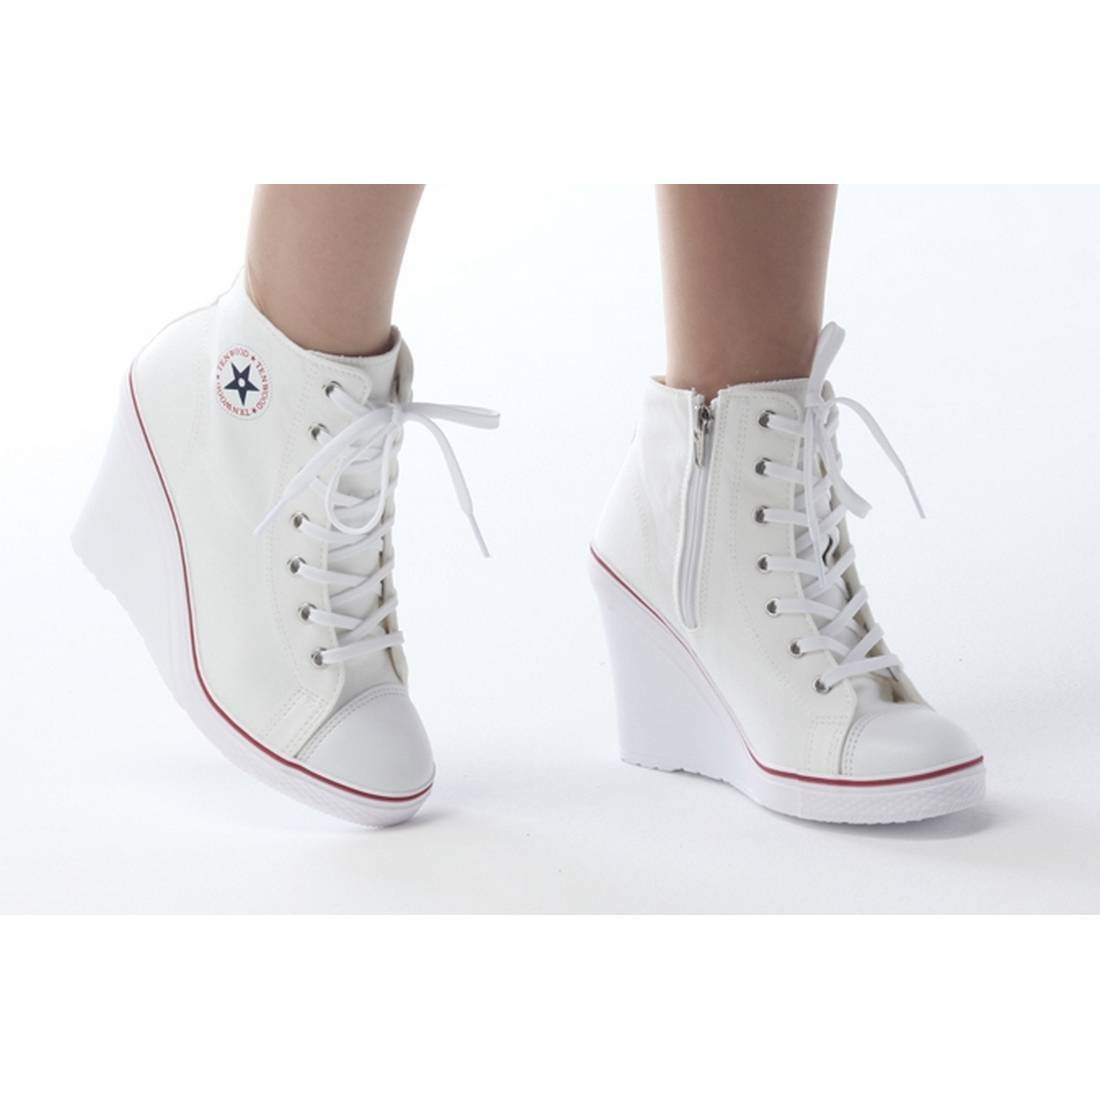 539c3e09150 ... EpicStep Women s Canvas High Top Top Top Wedges High Heels Casual  Fashion Sneakers B00XTVJXI2 7 B ...